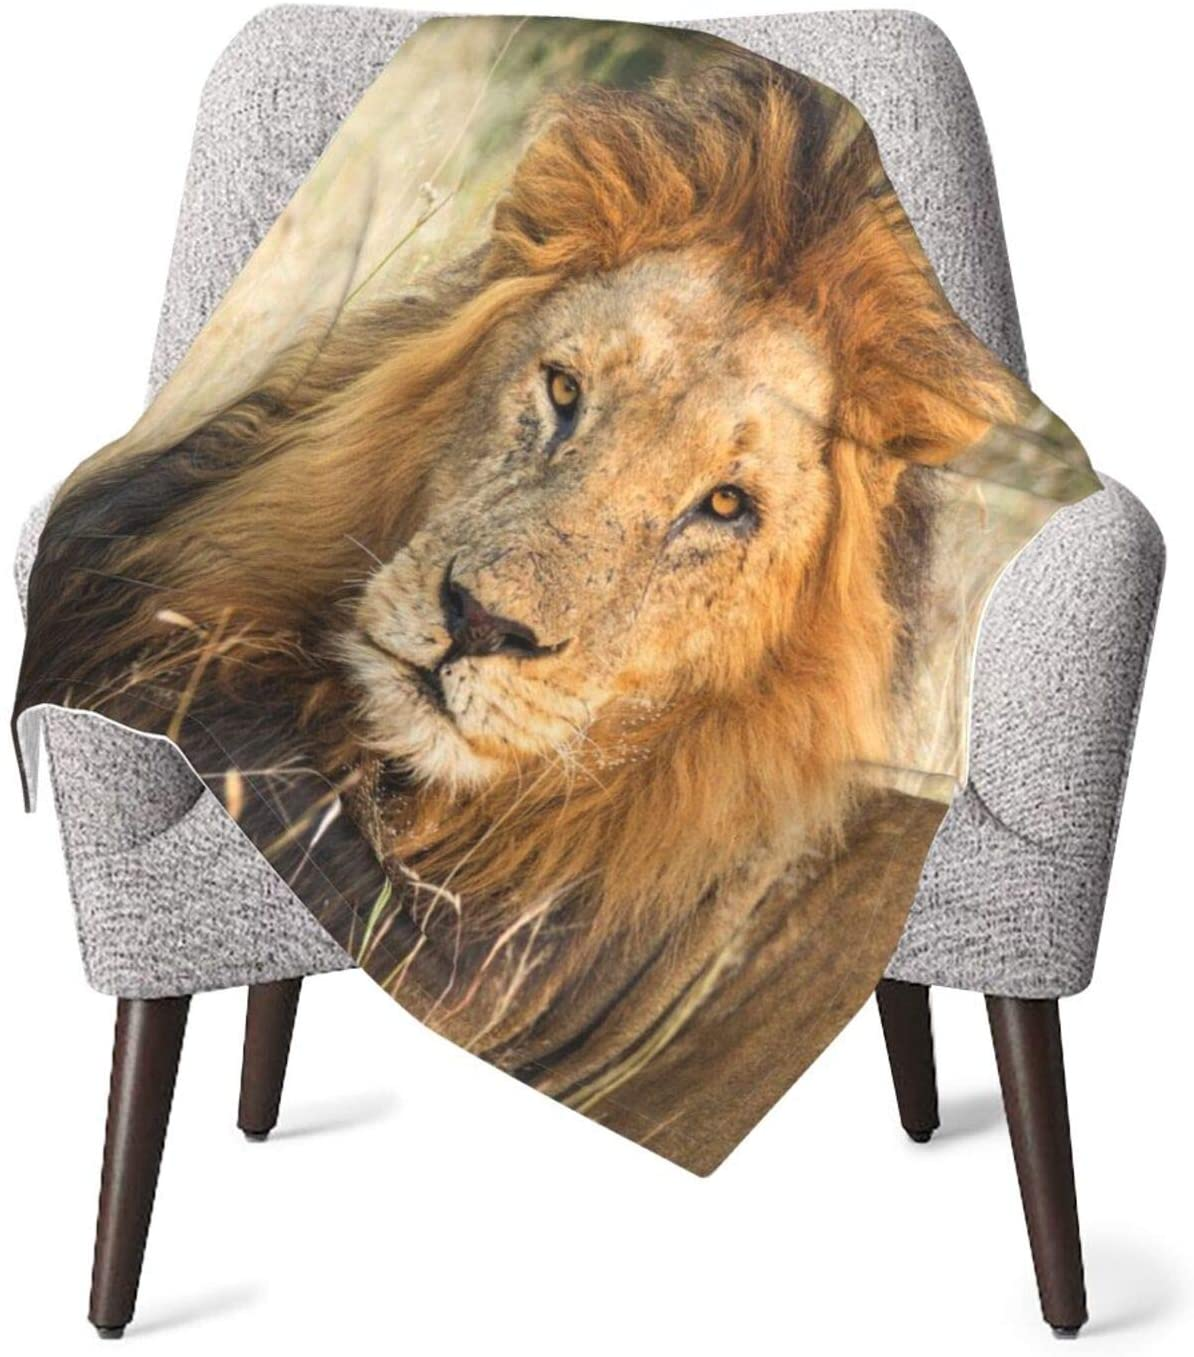 N\ A Male Lion Relaxing in Grass with Eye Contact Baby Blanket Unisex Wrap Soft Blankets Neutral Receiving Blanket for Boys and Girls 40 x 30 inches